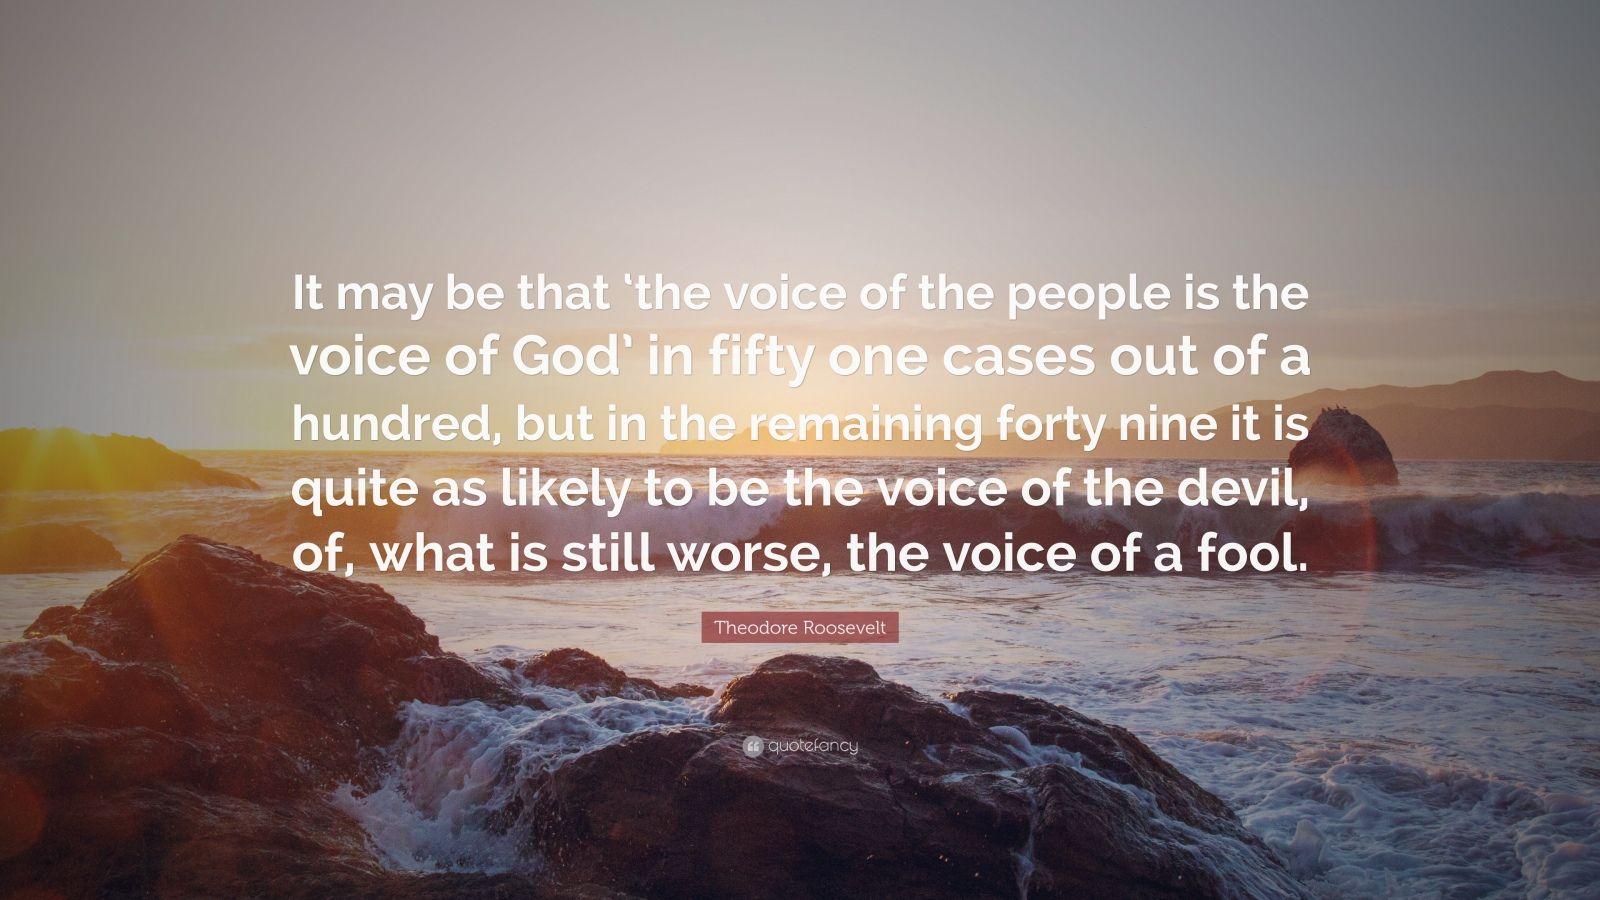 "Theodore Roosevelt Quote: ""It may be that 'the voice of the people is the voice of God' in fifty one cases out of a hundred, but in the remaining forty nine it is quite as likely to be the voice of the devil, of, what is still worse, the voice of a fool."""